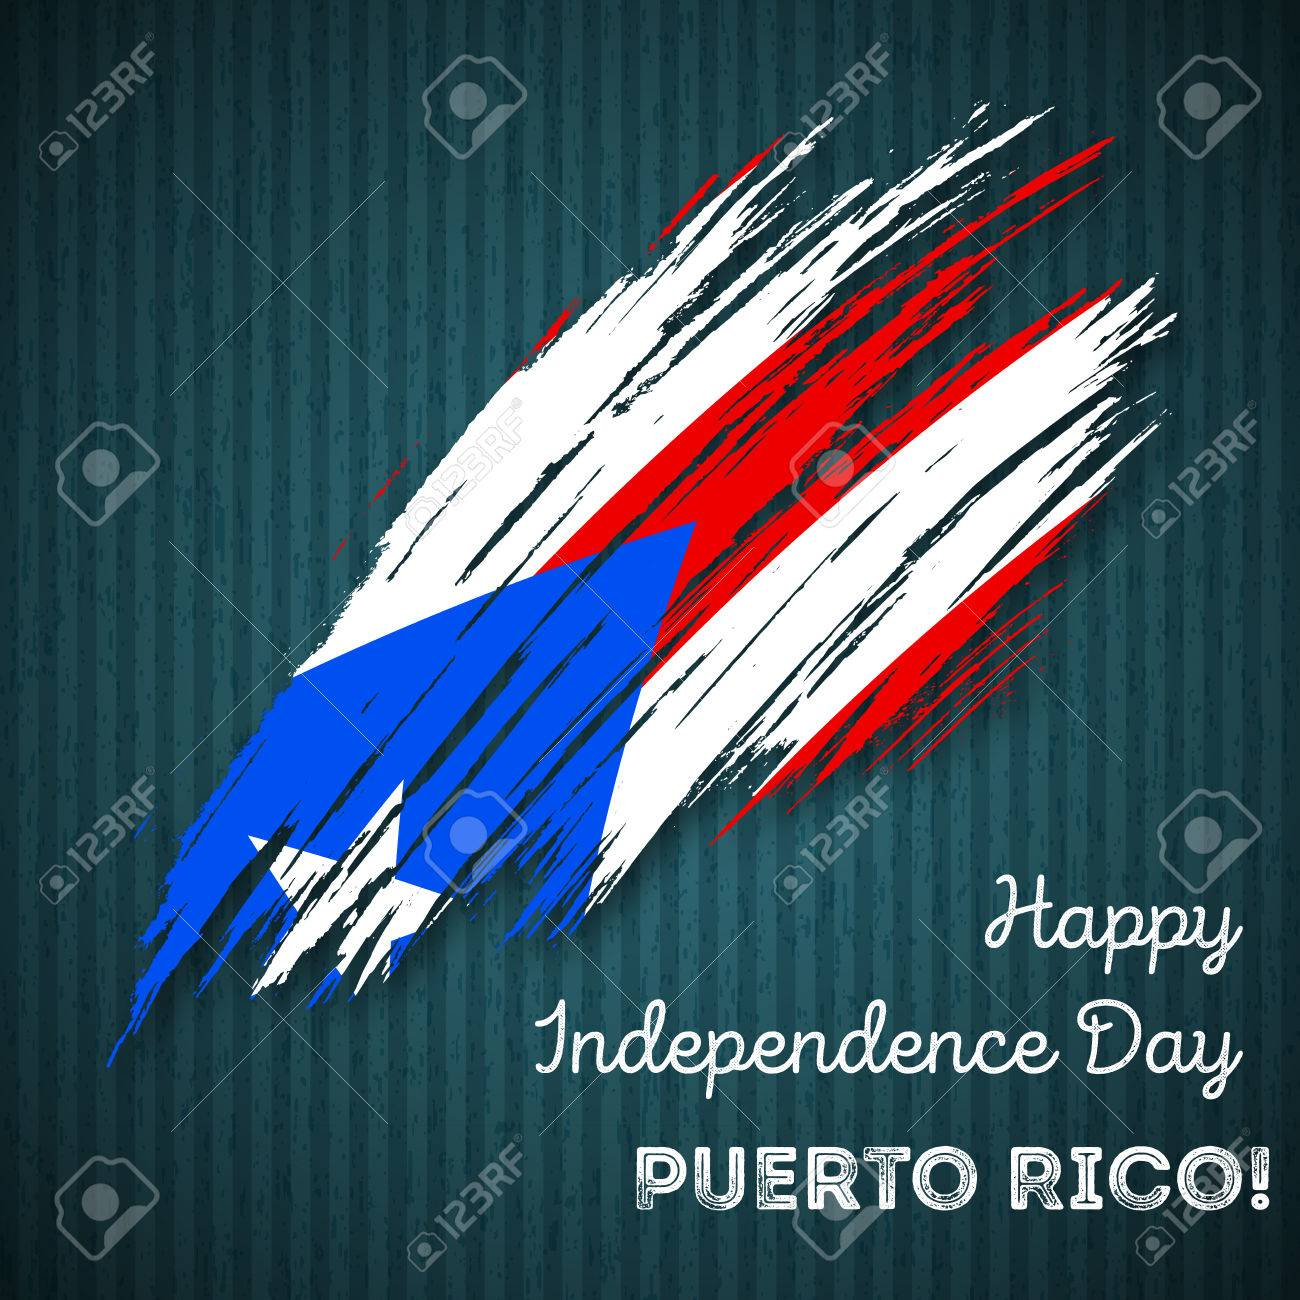 Puerto Rico Independence Day Patriotic Design Expressive Brush Stroke In National Flag Colors On Dark